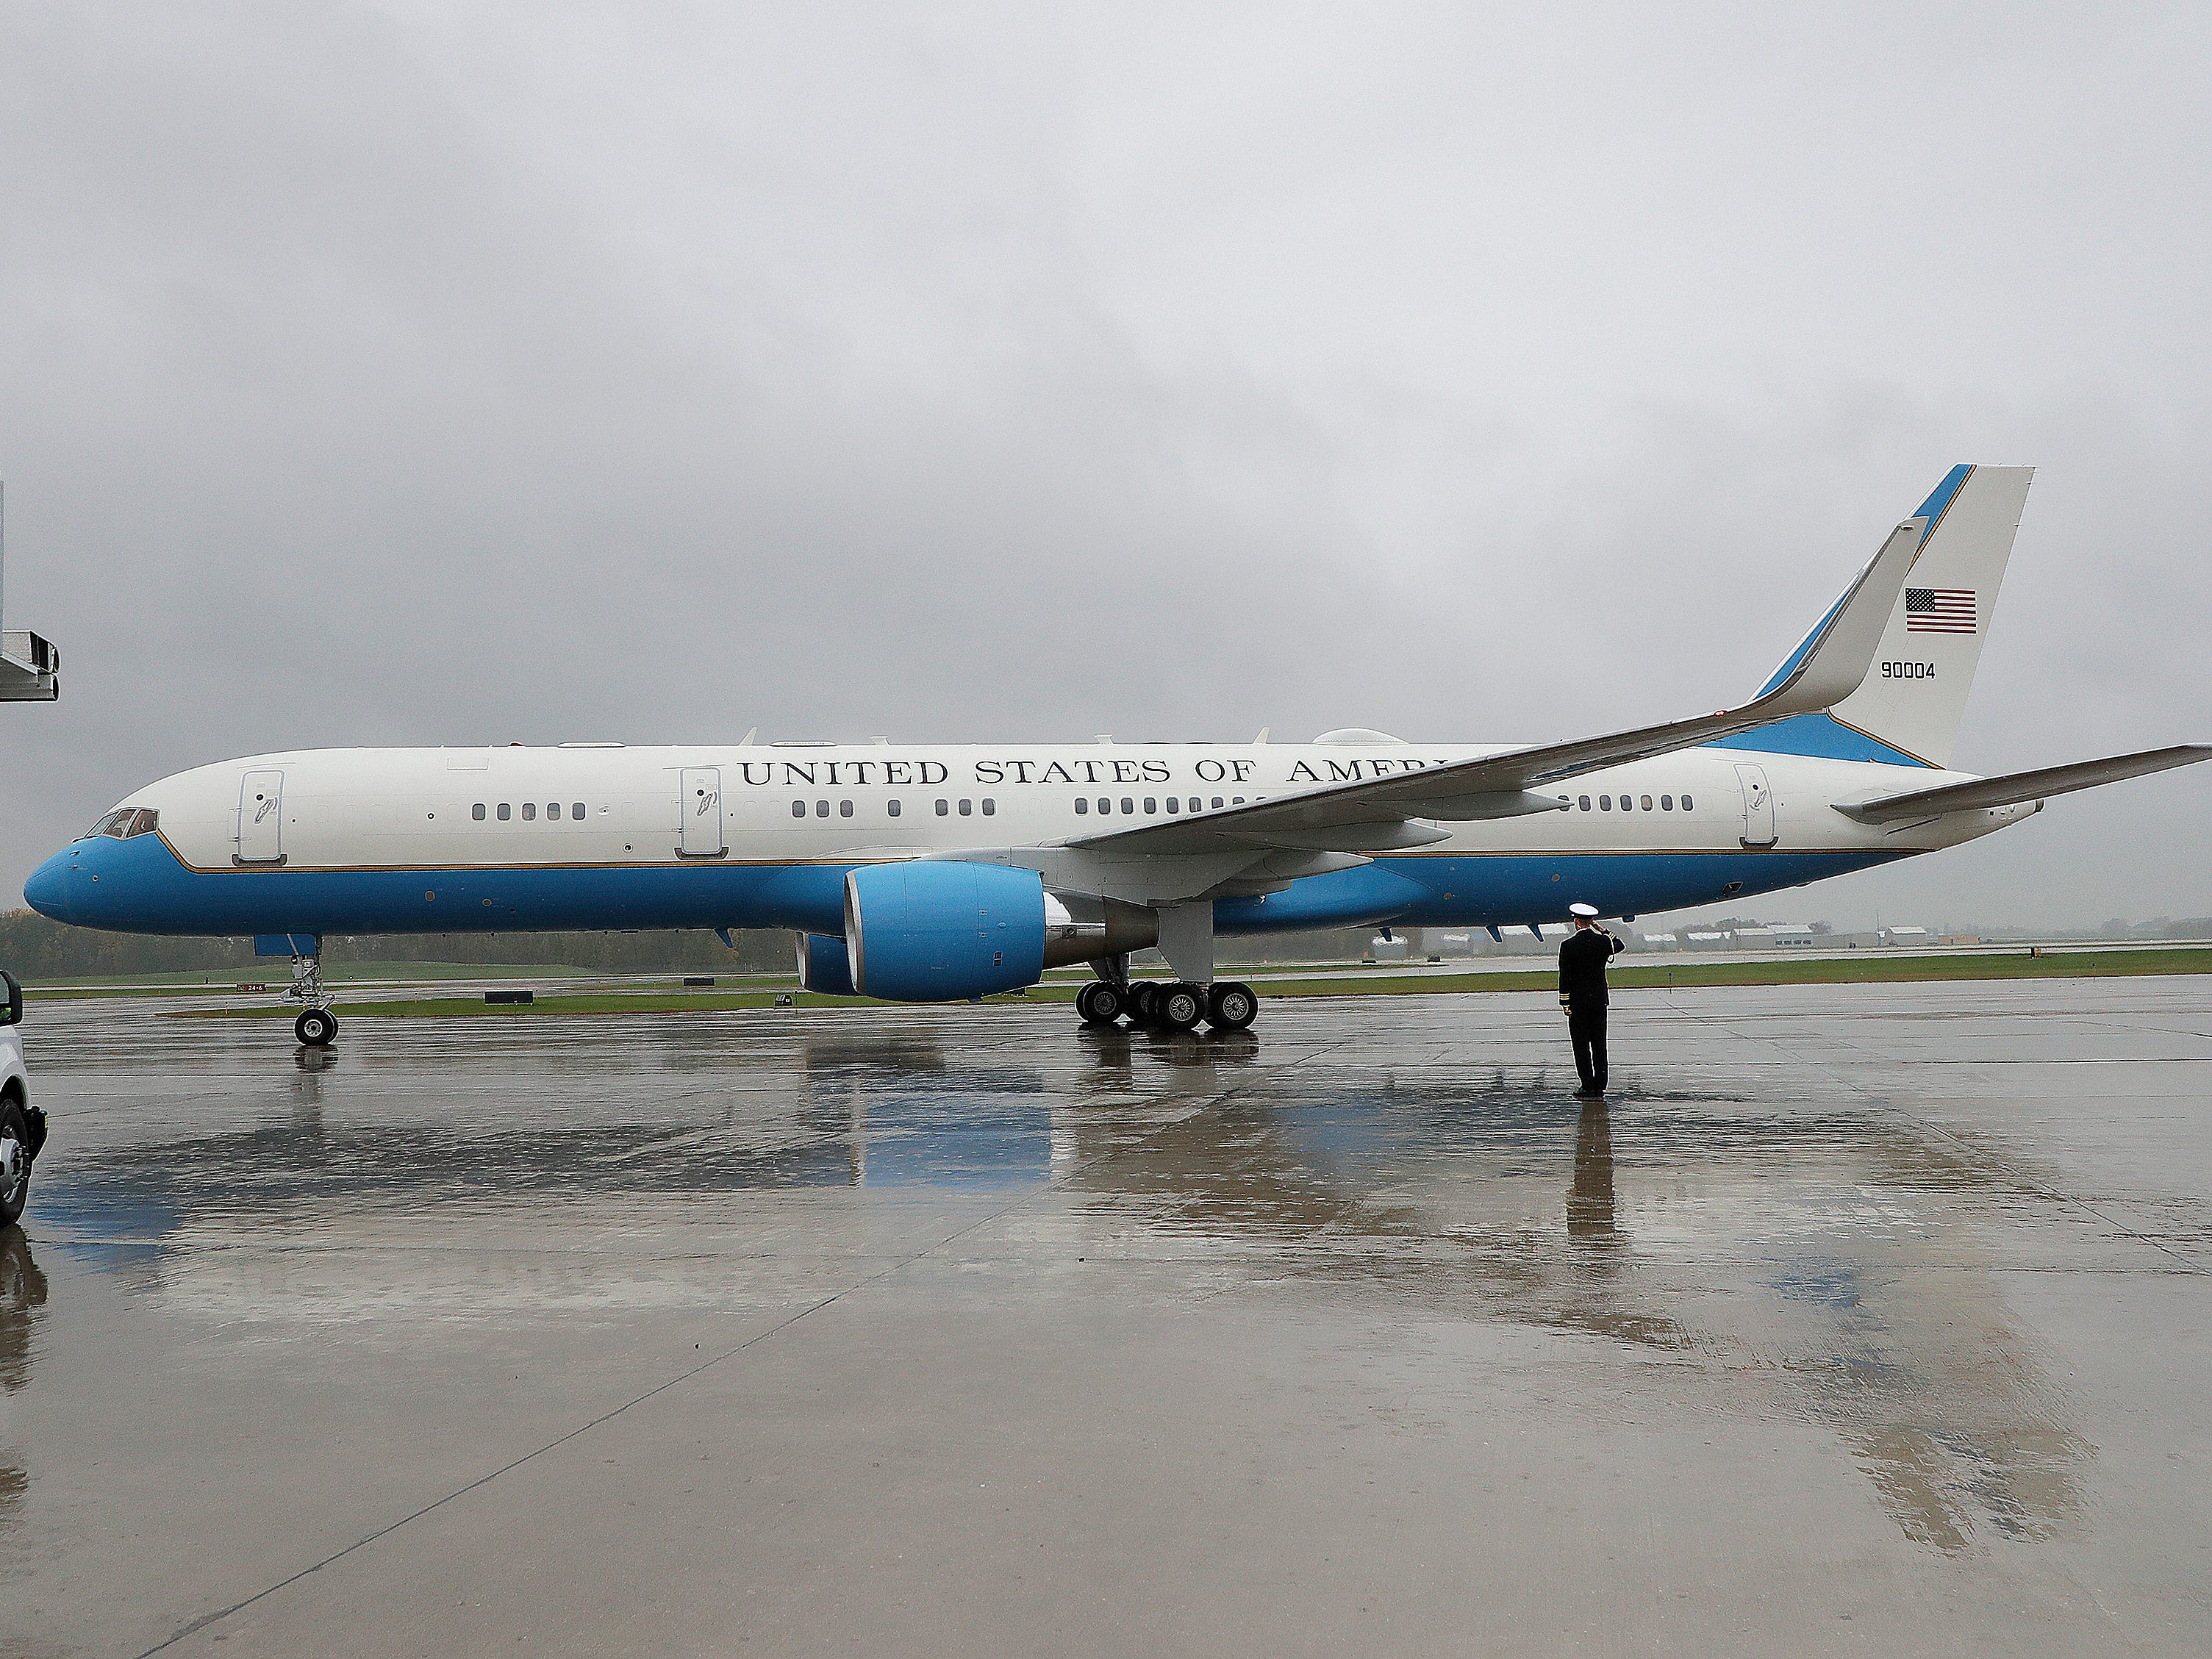 Vice President Mike Pence arrives at Green Bay's Austin Straubel International Airport aboard Air Force Two on Wednesday, Oct. 10, 2018.